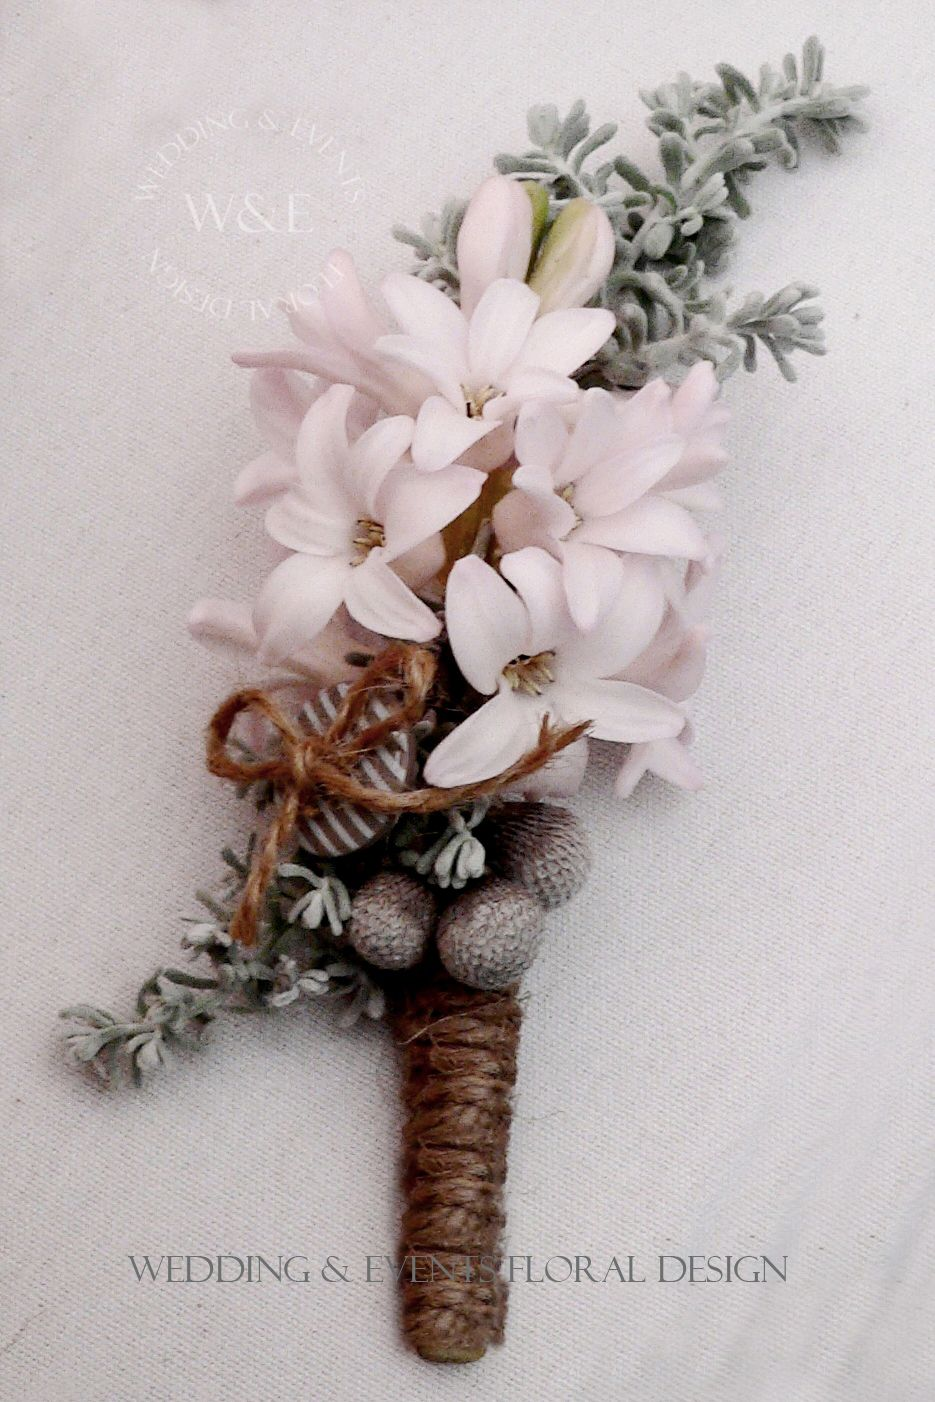 Stunning pink hyacinth buttonhole with twine wrap by wedding stunning pink hyacinth buttonhole with twine wrap by wedding events floral design weddingandevents dhlflorist Choice Image